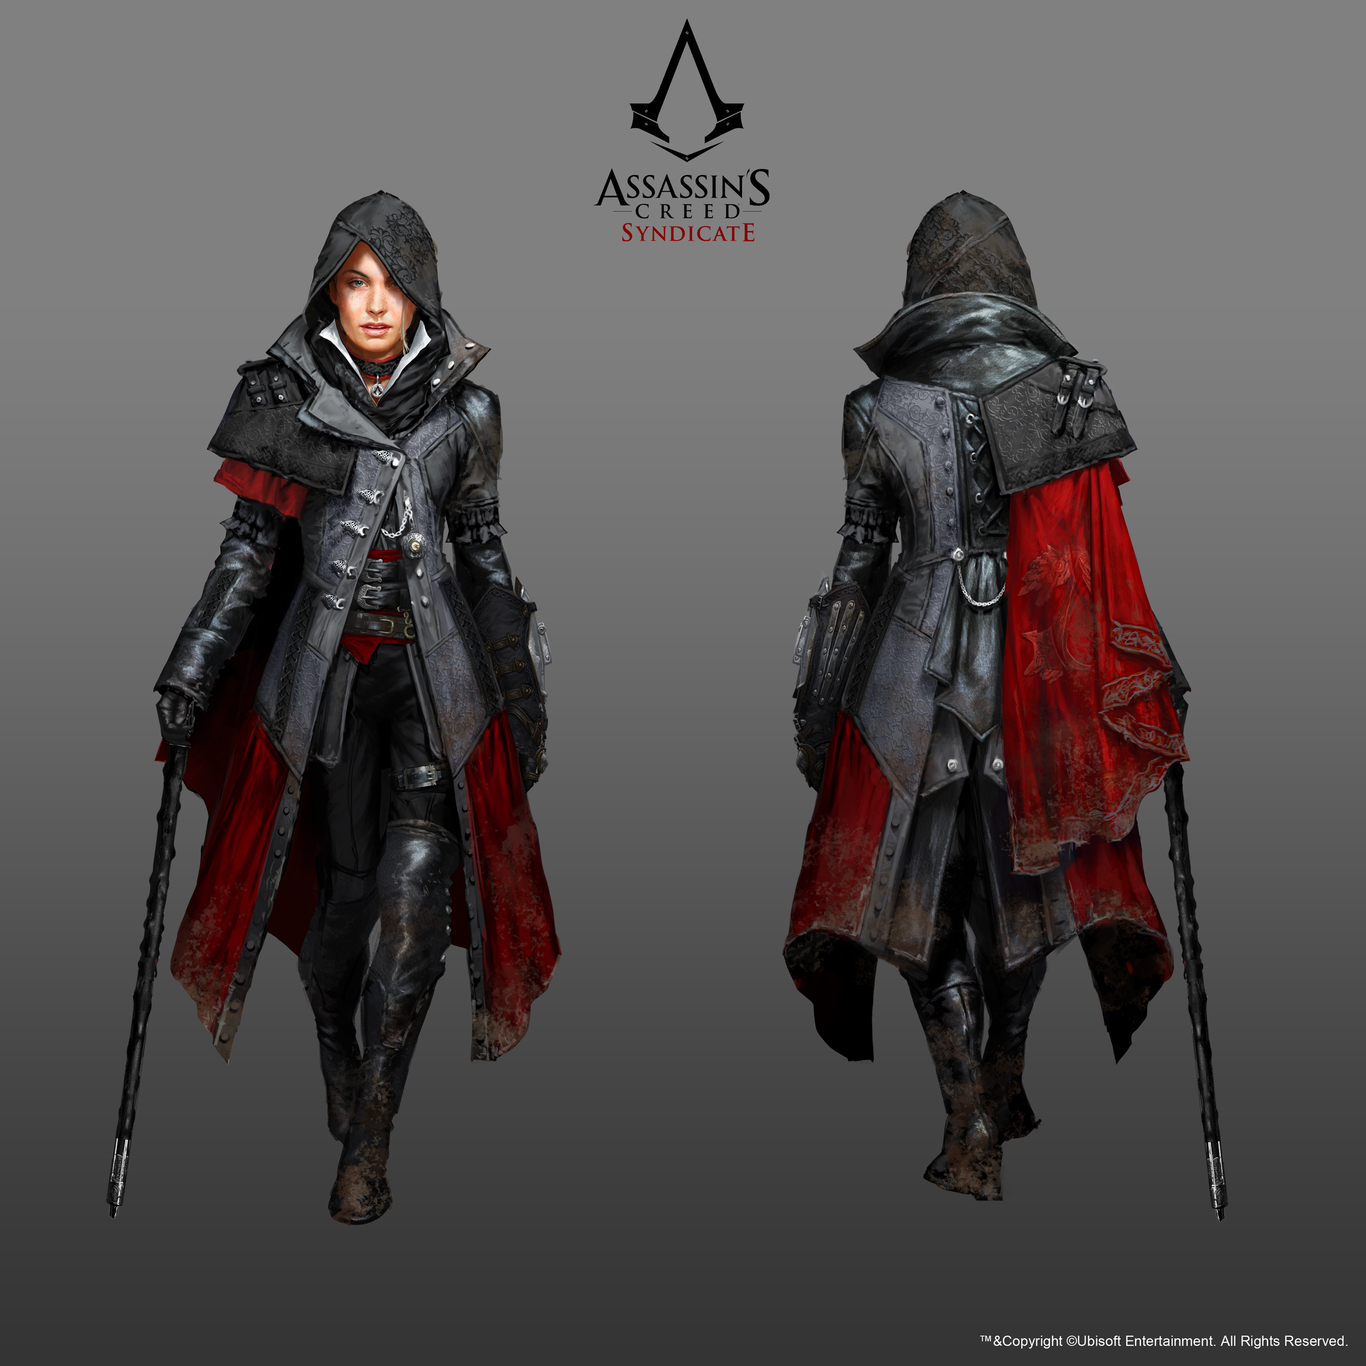 Assassin S Creed Syndicate Character Evie Frye By Artjunkie